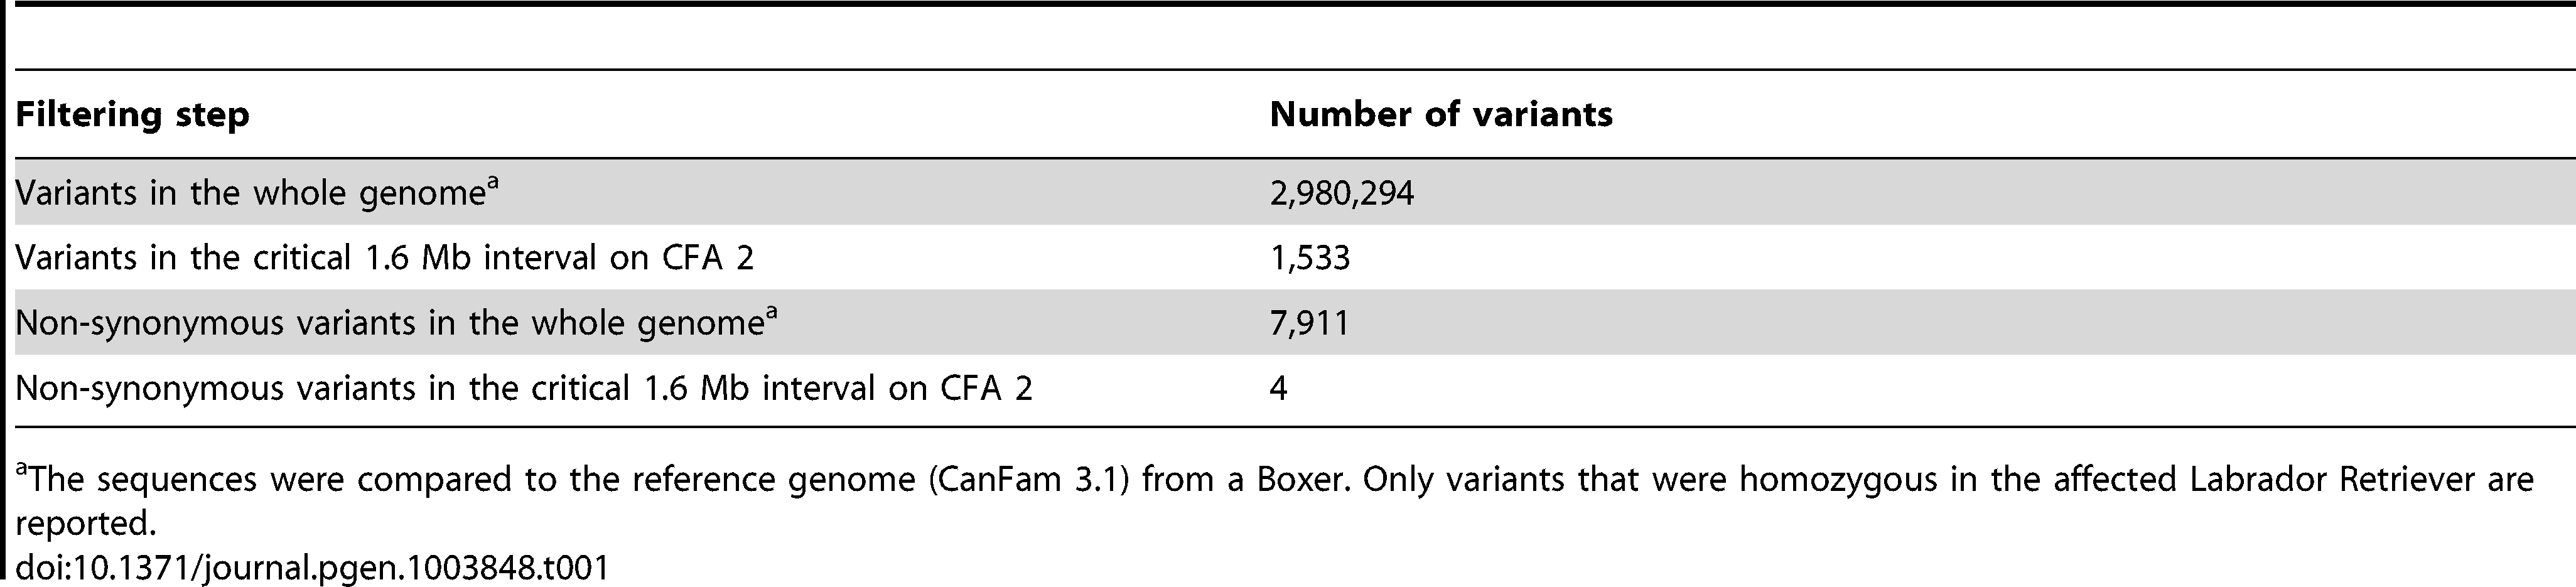 Variants detected by whole genome re-sequencing of an affected Labrador Retriever.